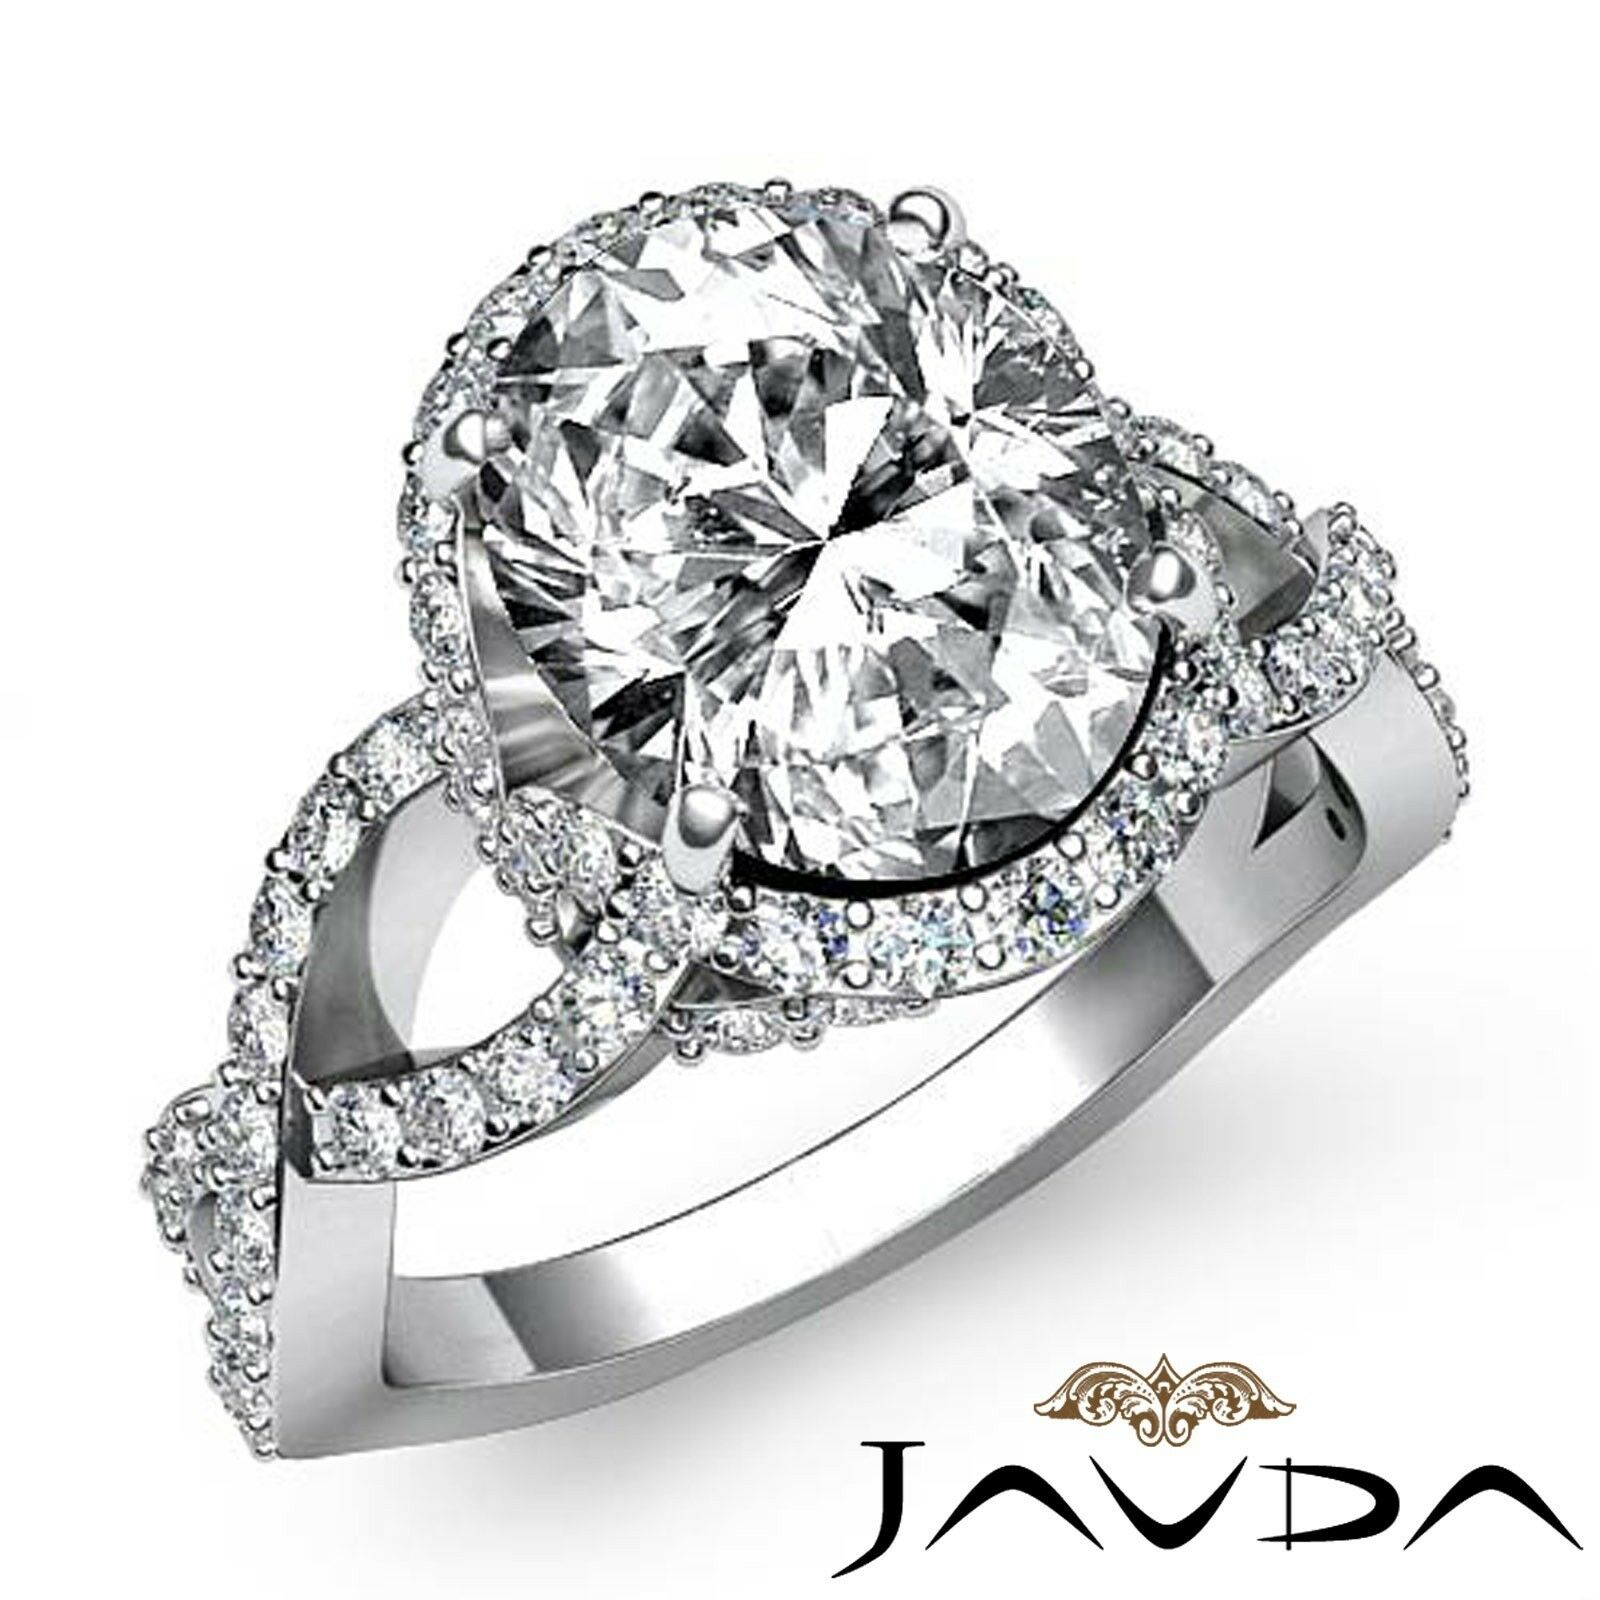 1.9ctw Halo Pave Cross-Shank Oval Diamond Engagement Ring GIA H-VS2 White Gold